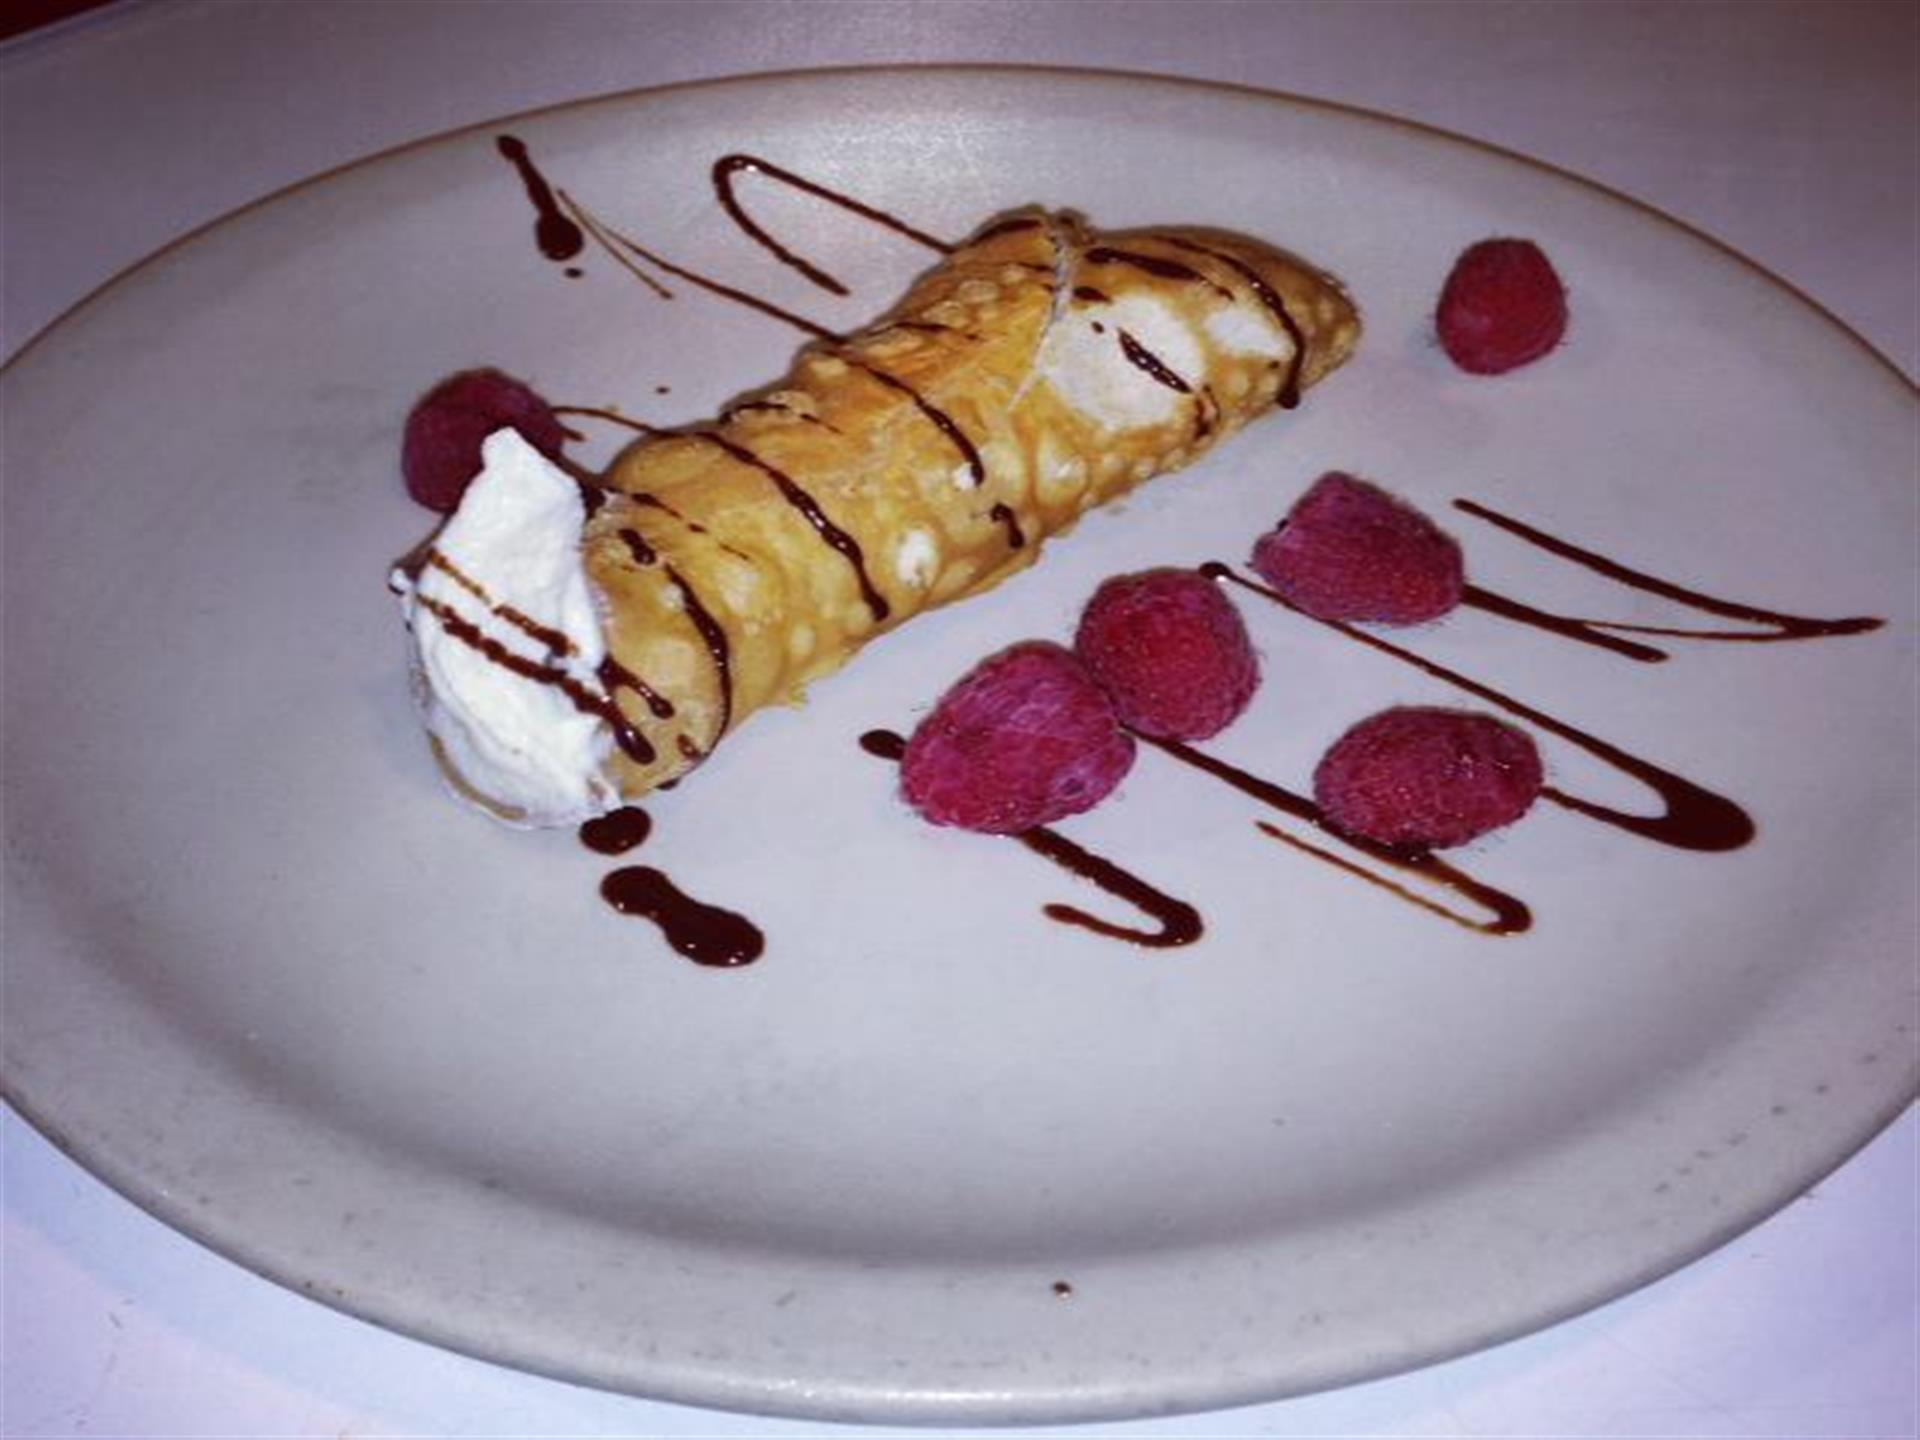 cannoli drizzled with chocolate and a few raspberries on a plate